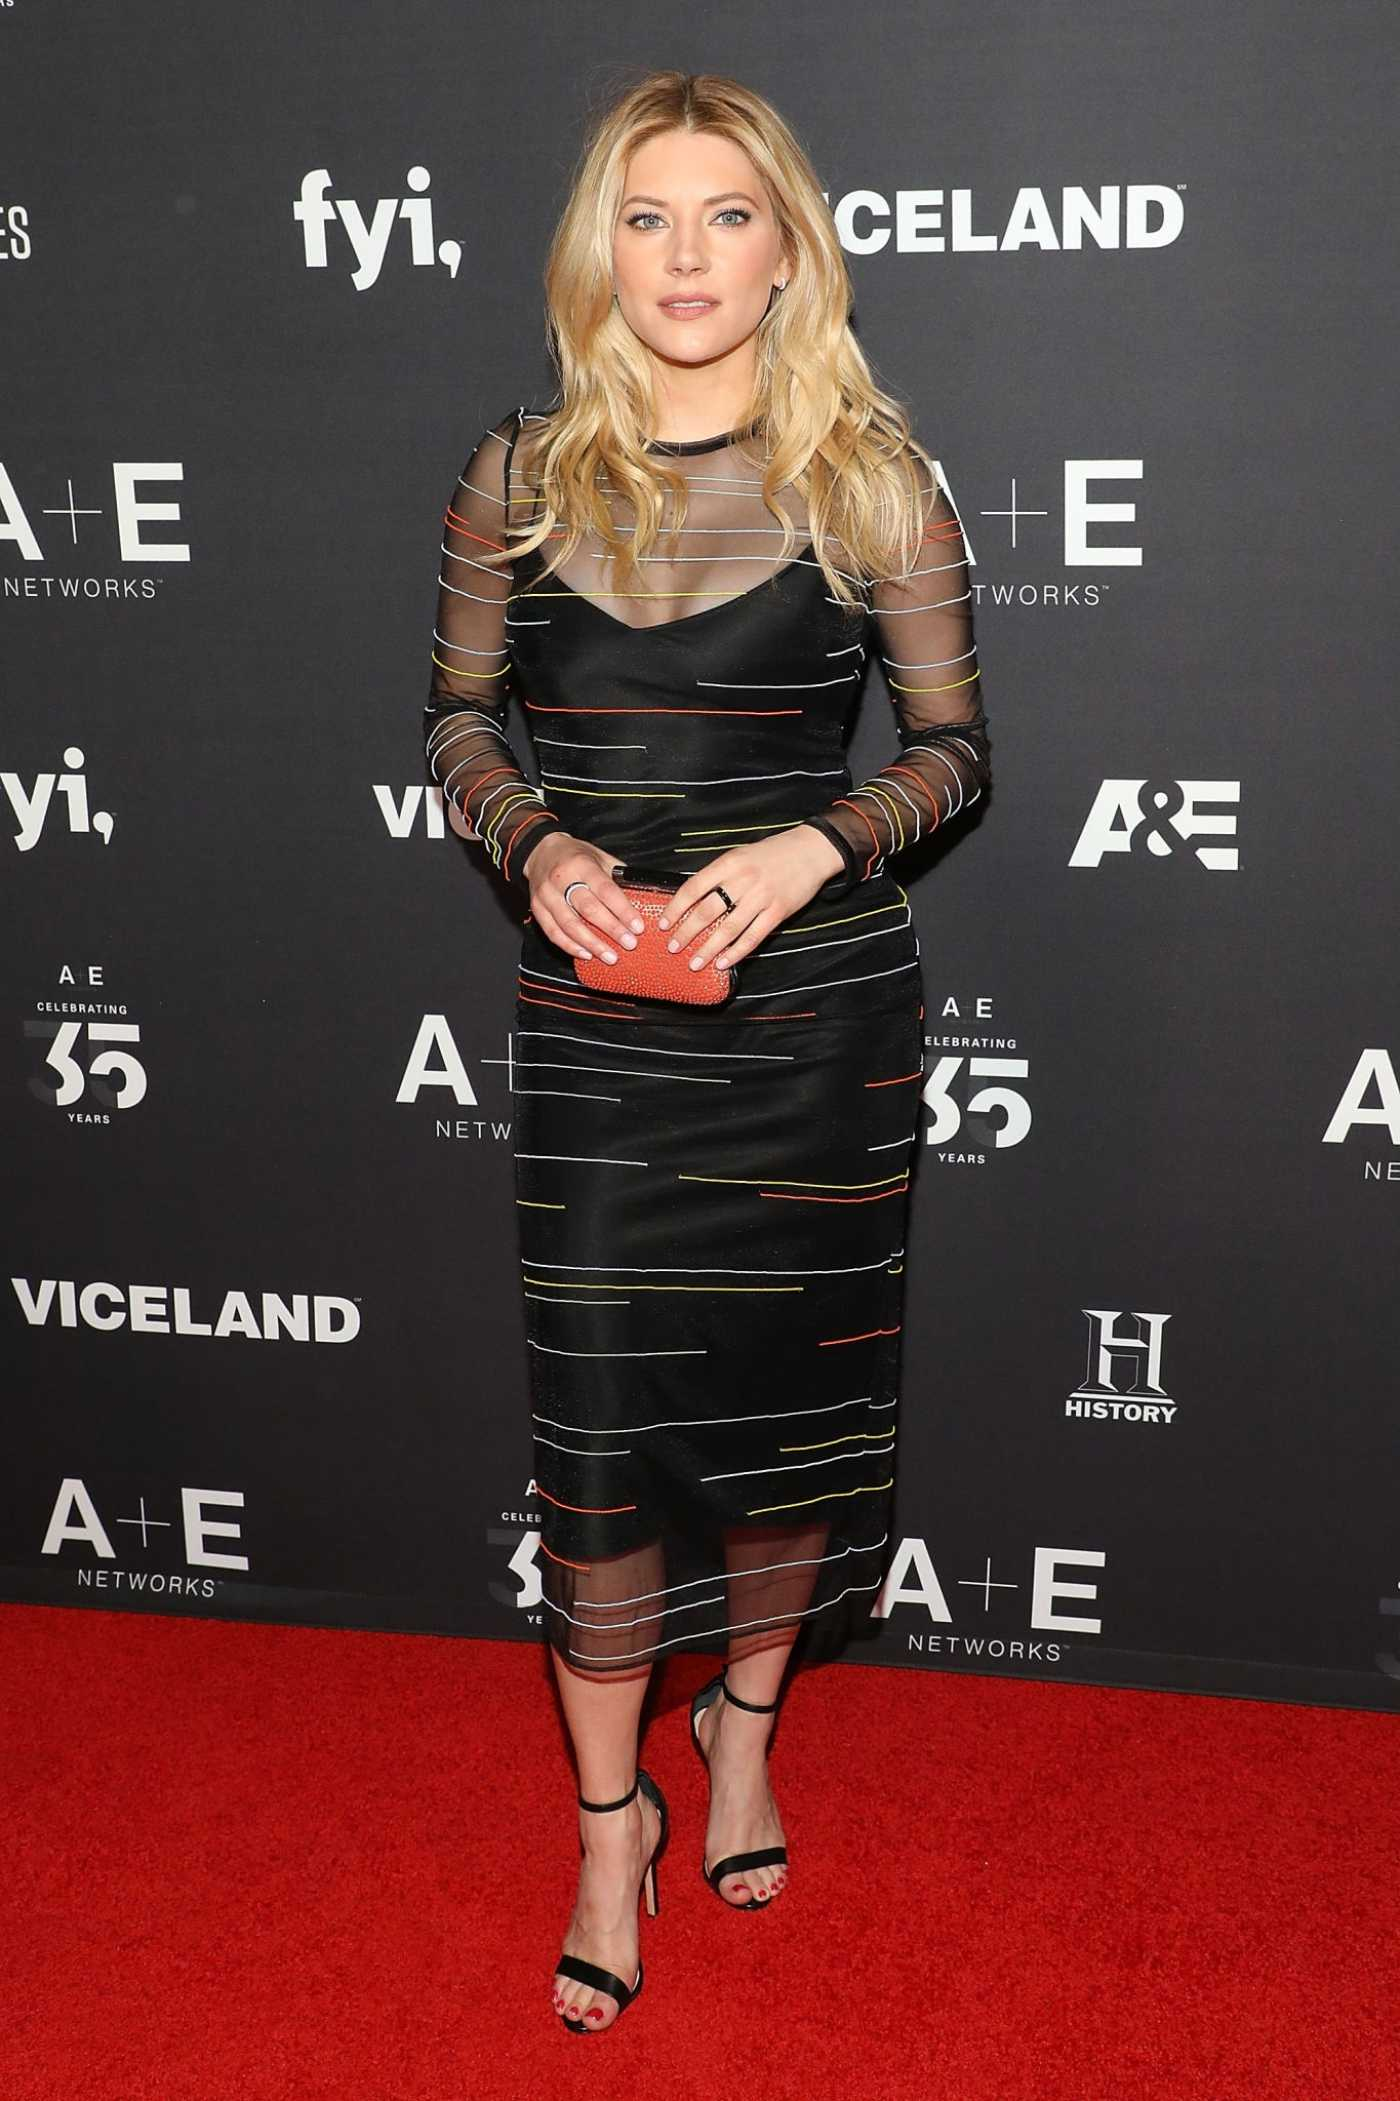 Katheryn Winnick Attends 2019 A+E Upfront at Jazz at Lincoln Center in New York City 03/27/2019